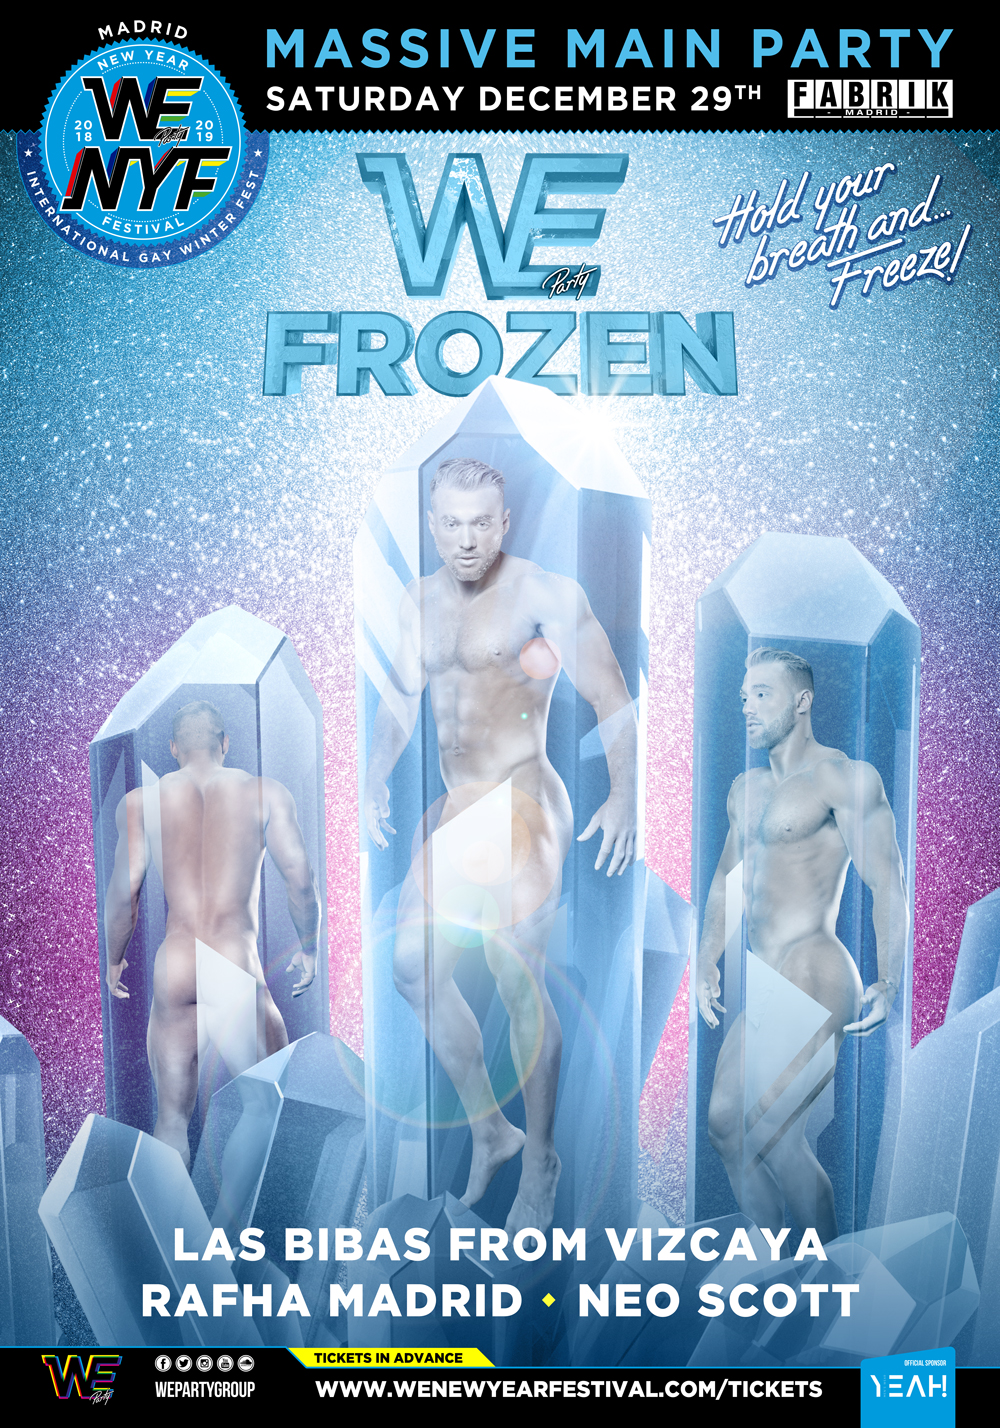 we-party-frozen-normal-vip-5bc86ef881cfa